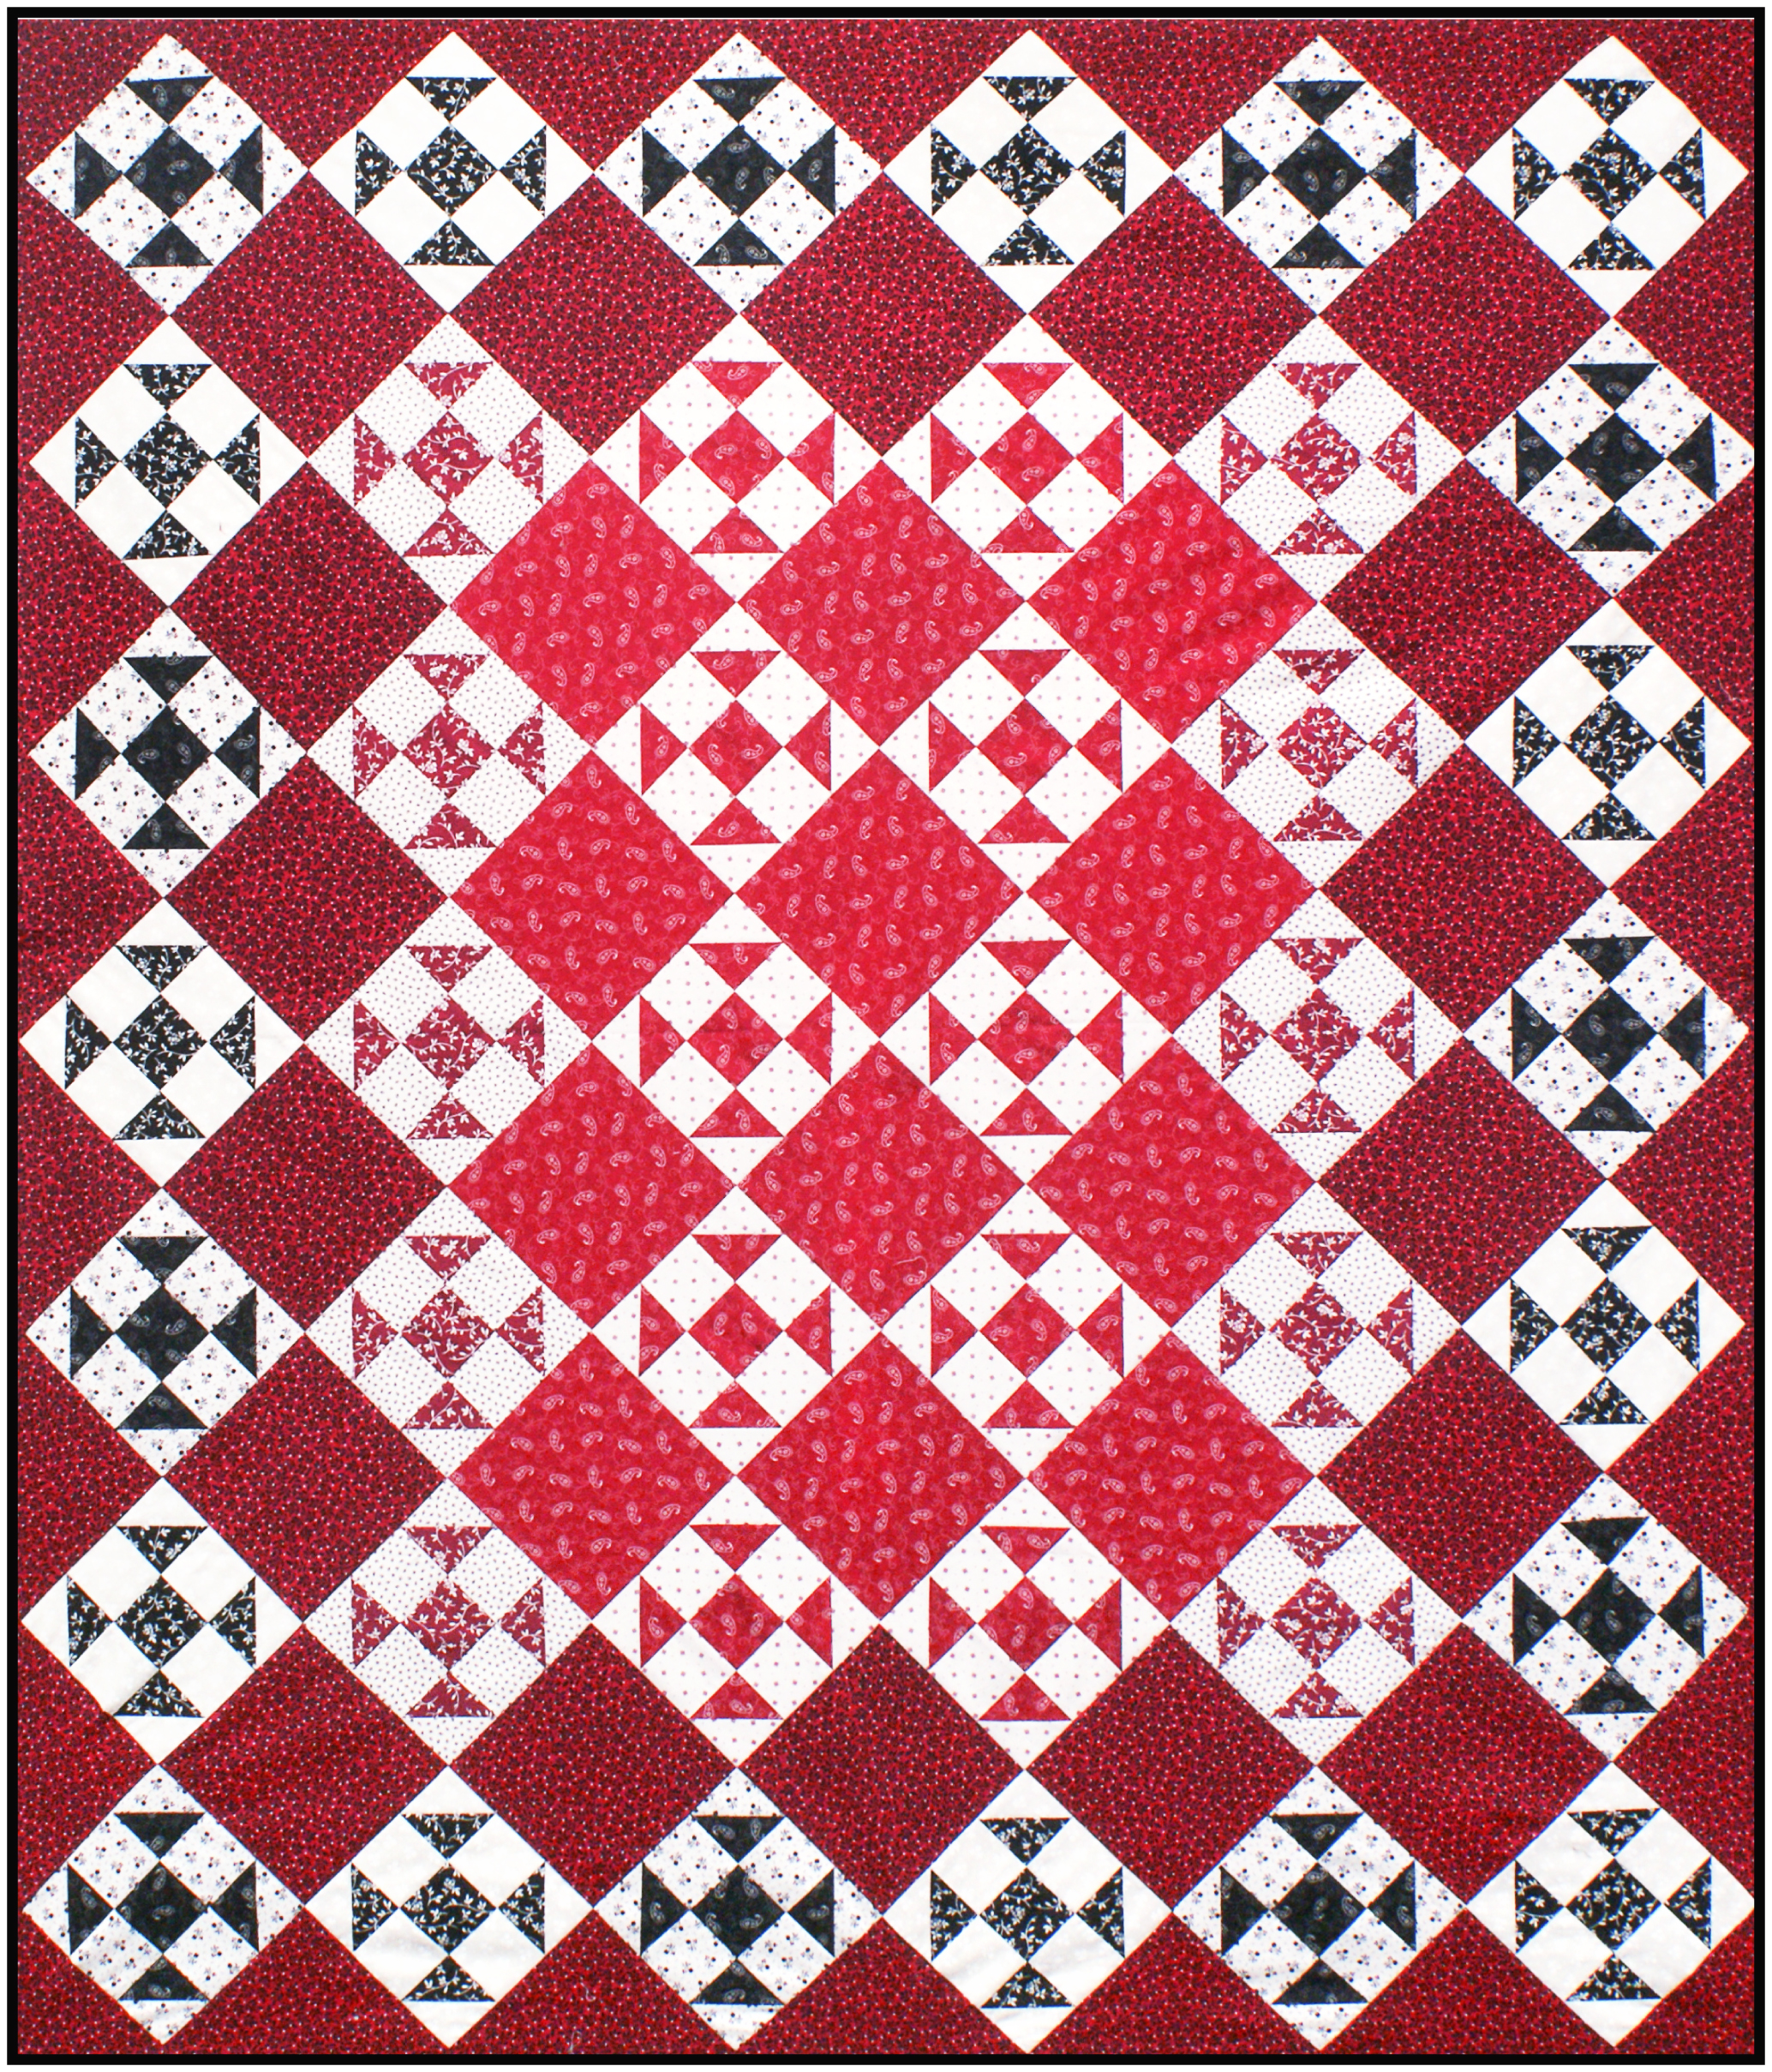 """Classic Colors"" quilt (51"" x 60"")  Download the FREE pattern , designed by Darlene Zimmerman, from our Patterns section at robertkaufman.com."